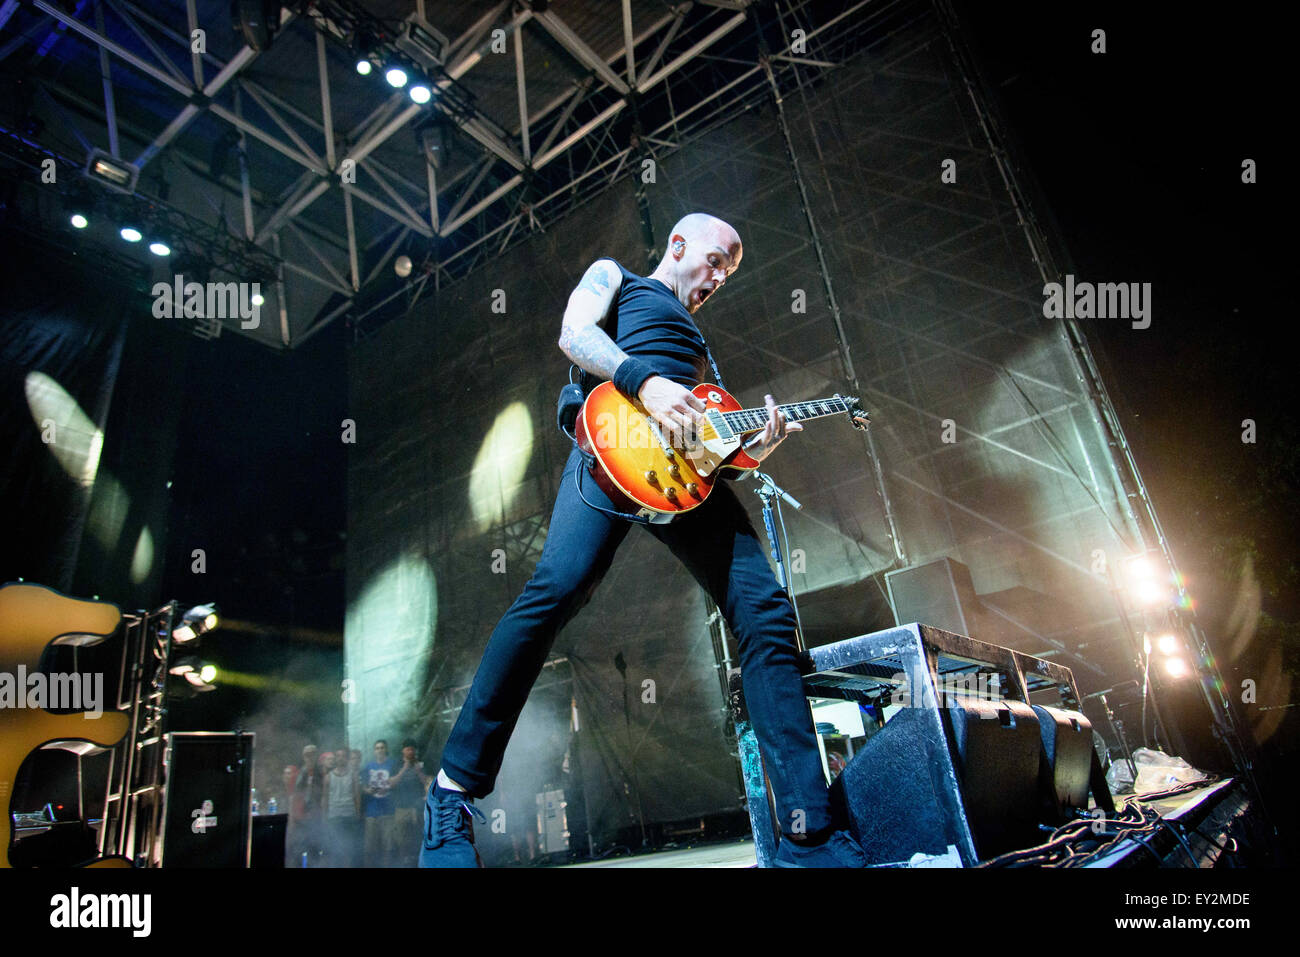 Toronto, Ontario, Canada. 19th July, 2015. American melodic hardcore band from Chicago, Illinois, Rise Against performed - Stock Image